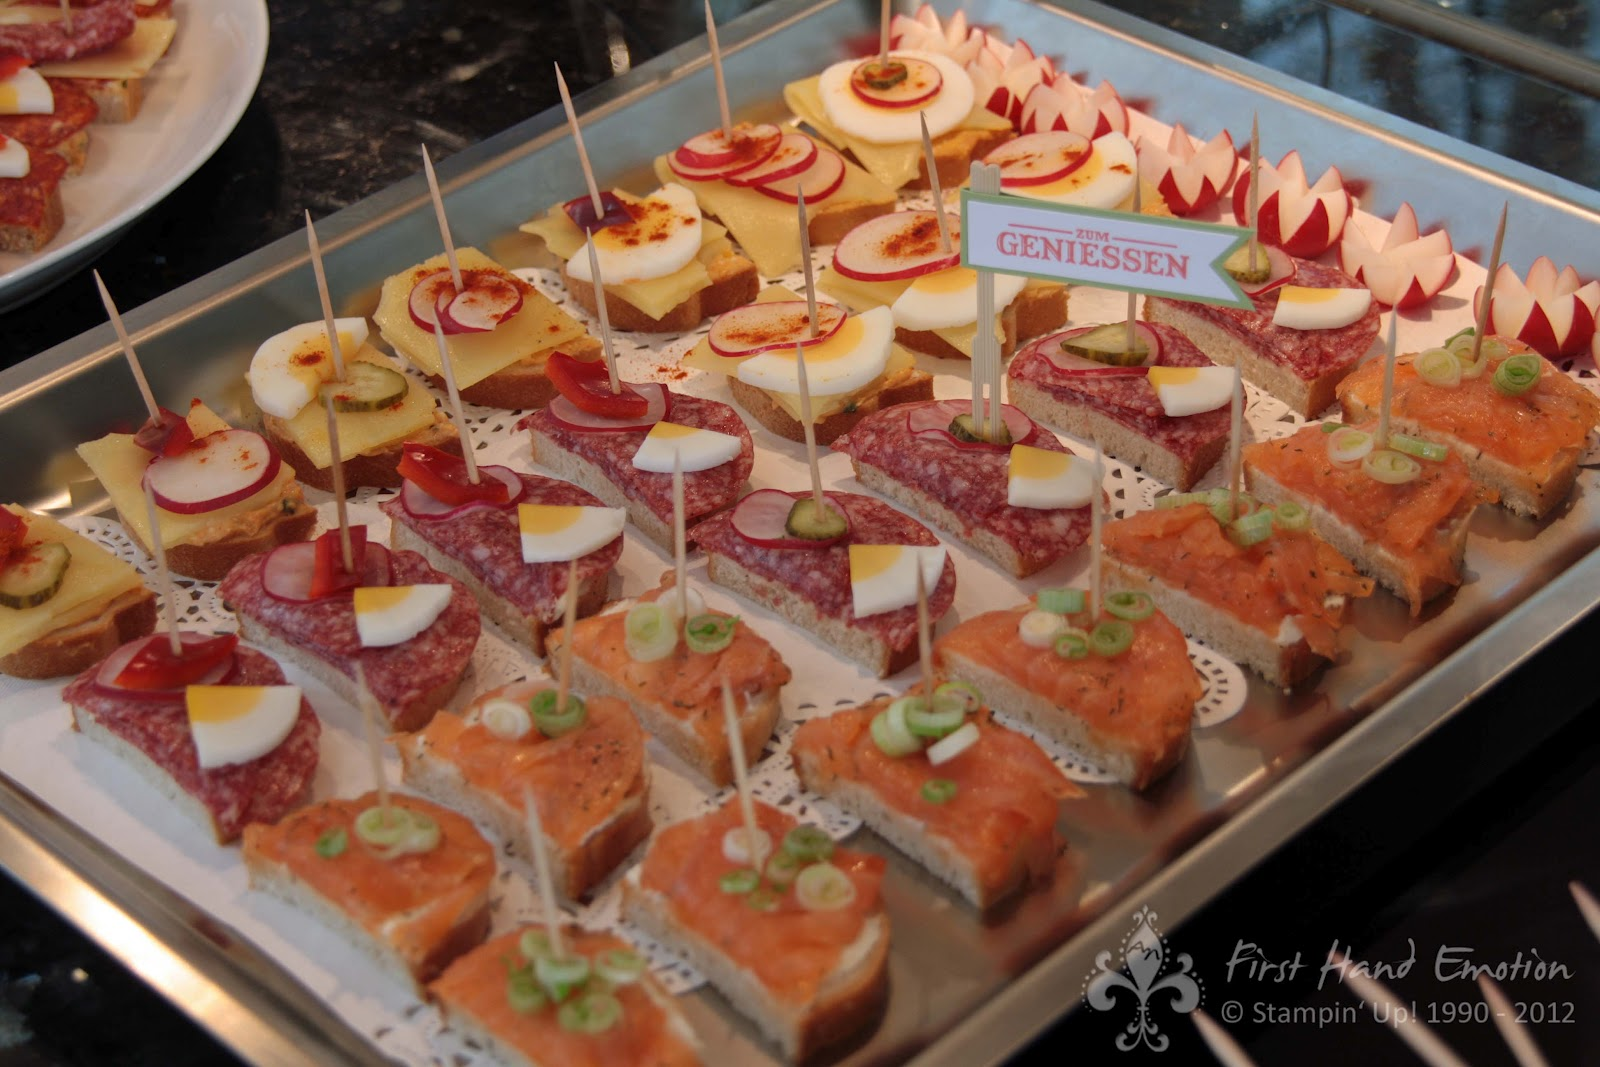 Party Snacks Schnell Zubereitet First Hand Emotion Stampin 39 Up Spiesschen Am Kalten Buffet